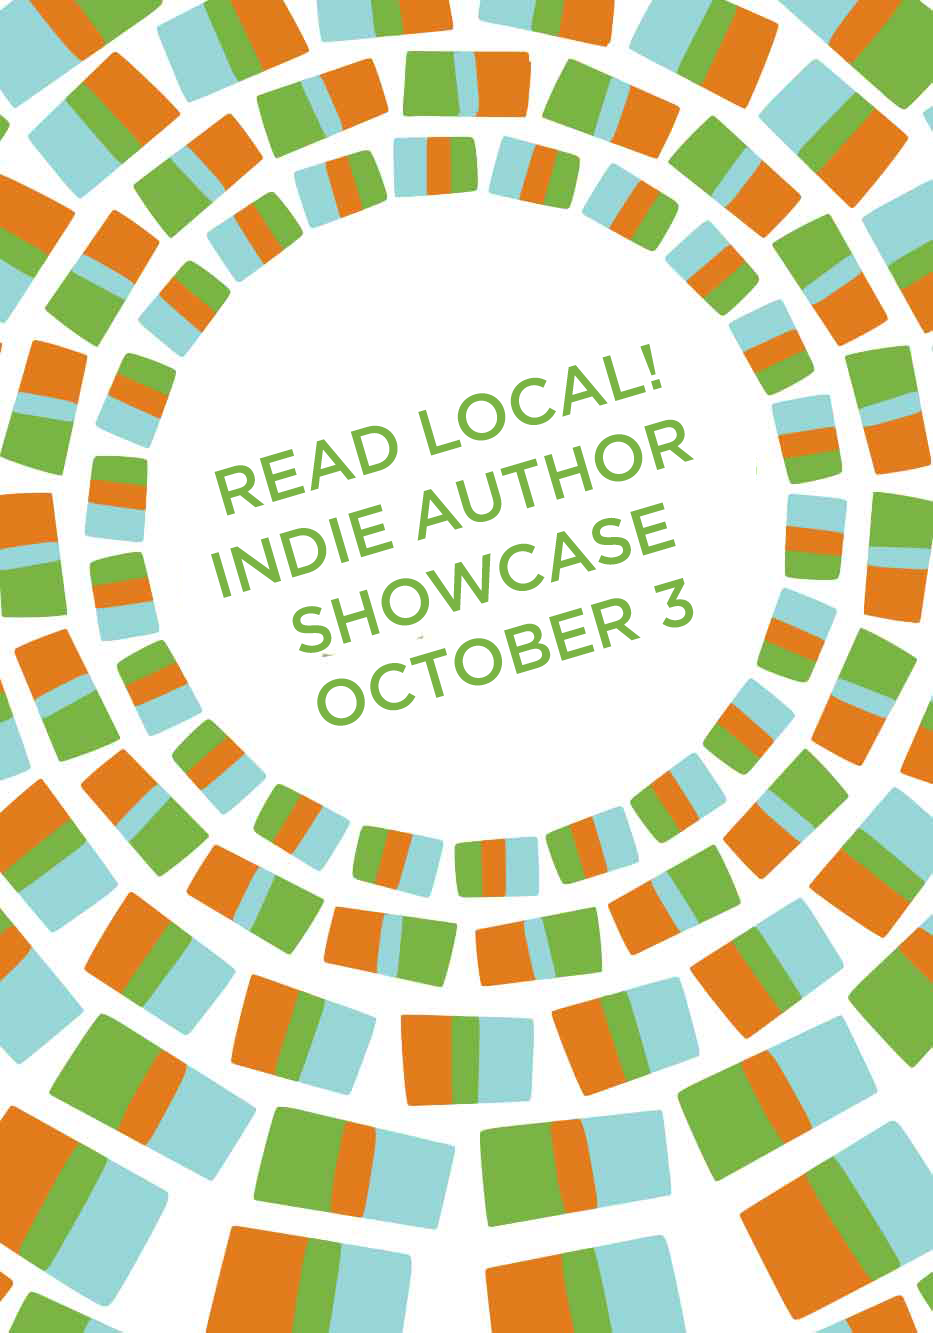 "Read Local! Indie Author Showcase -  - <span class=""date-display-single"">10/03/2015 - 9:00am</span>"